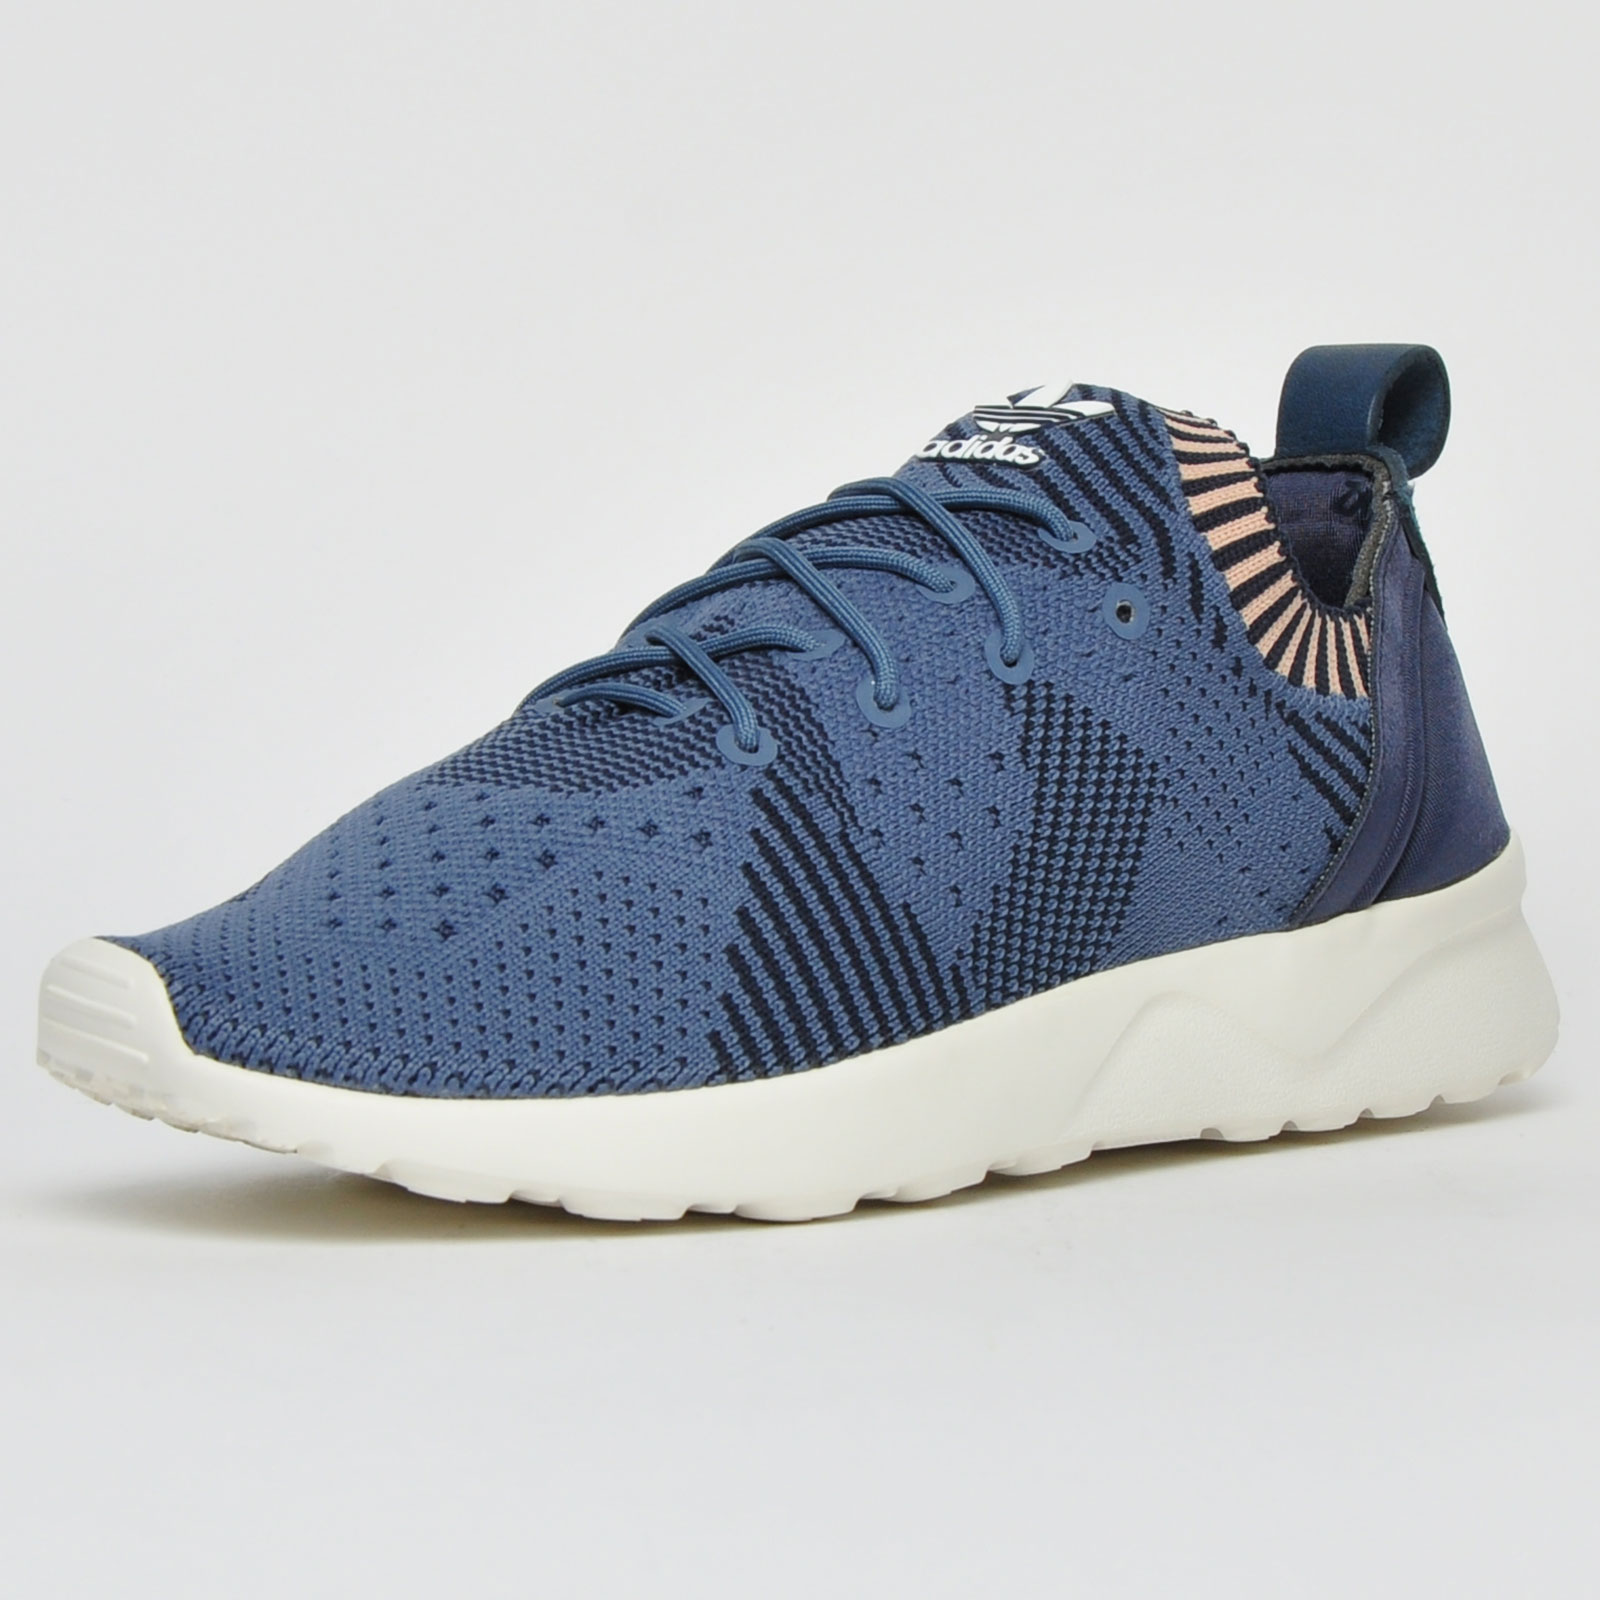 watch ae145 45eb7 Details about Adidas Originals ZX Flux ADV Virtue Primeknit Womens Classic  Casual Running Gym